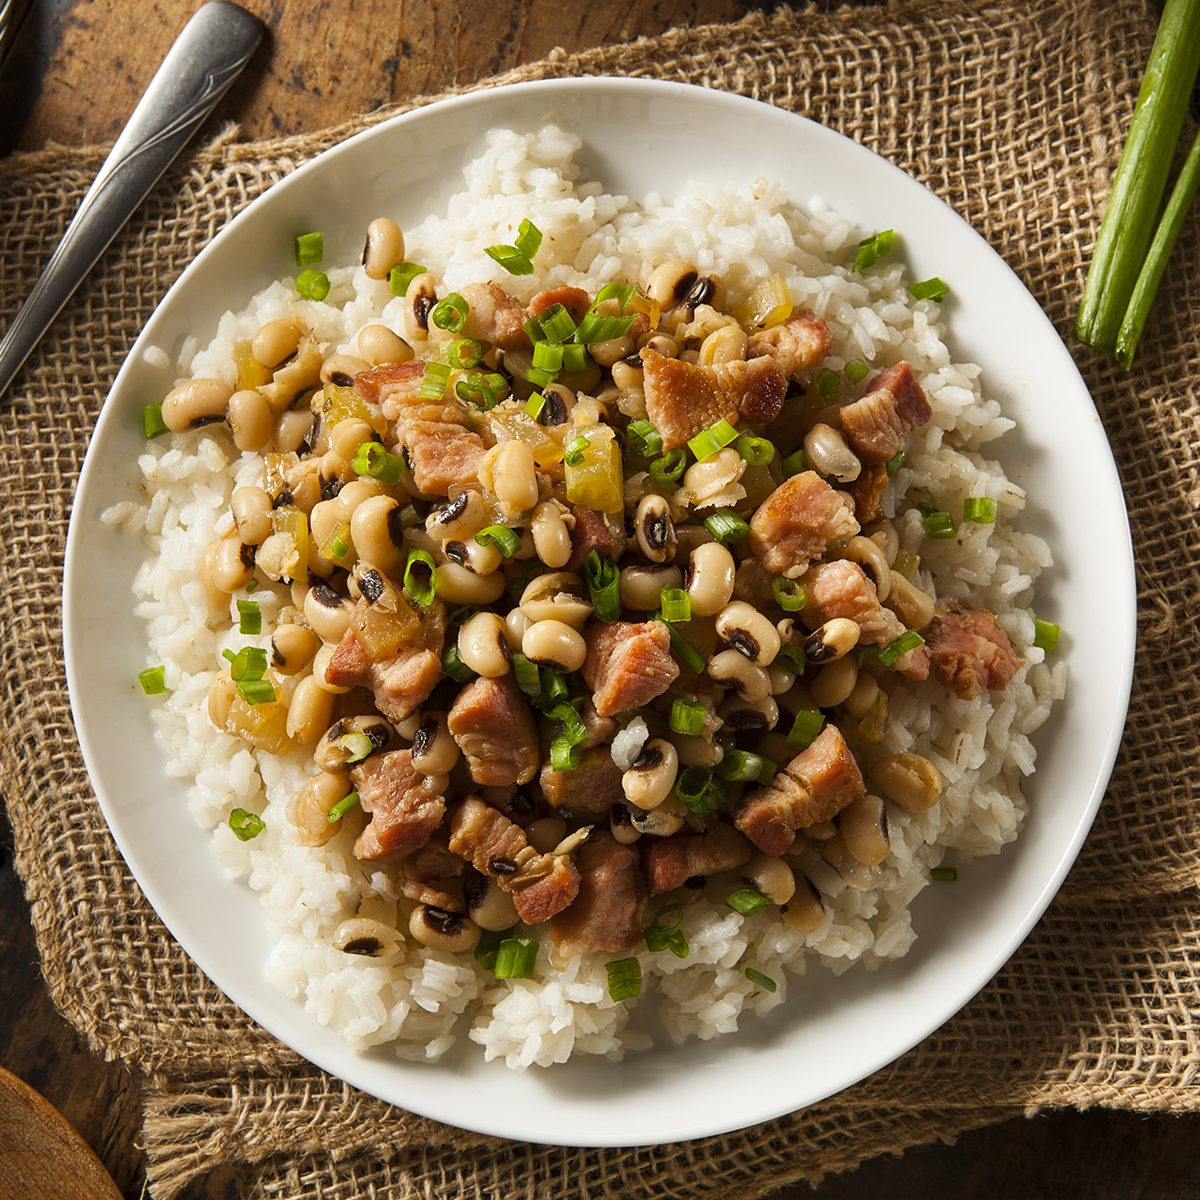 dish of rice and black-eyed peas